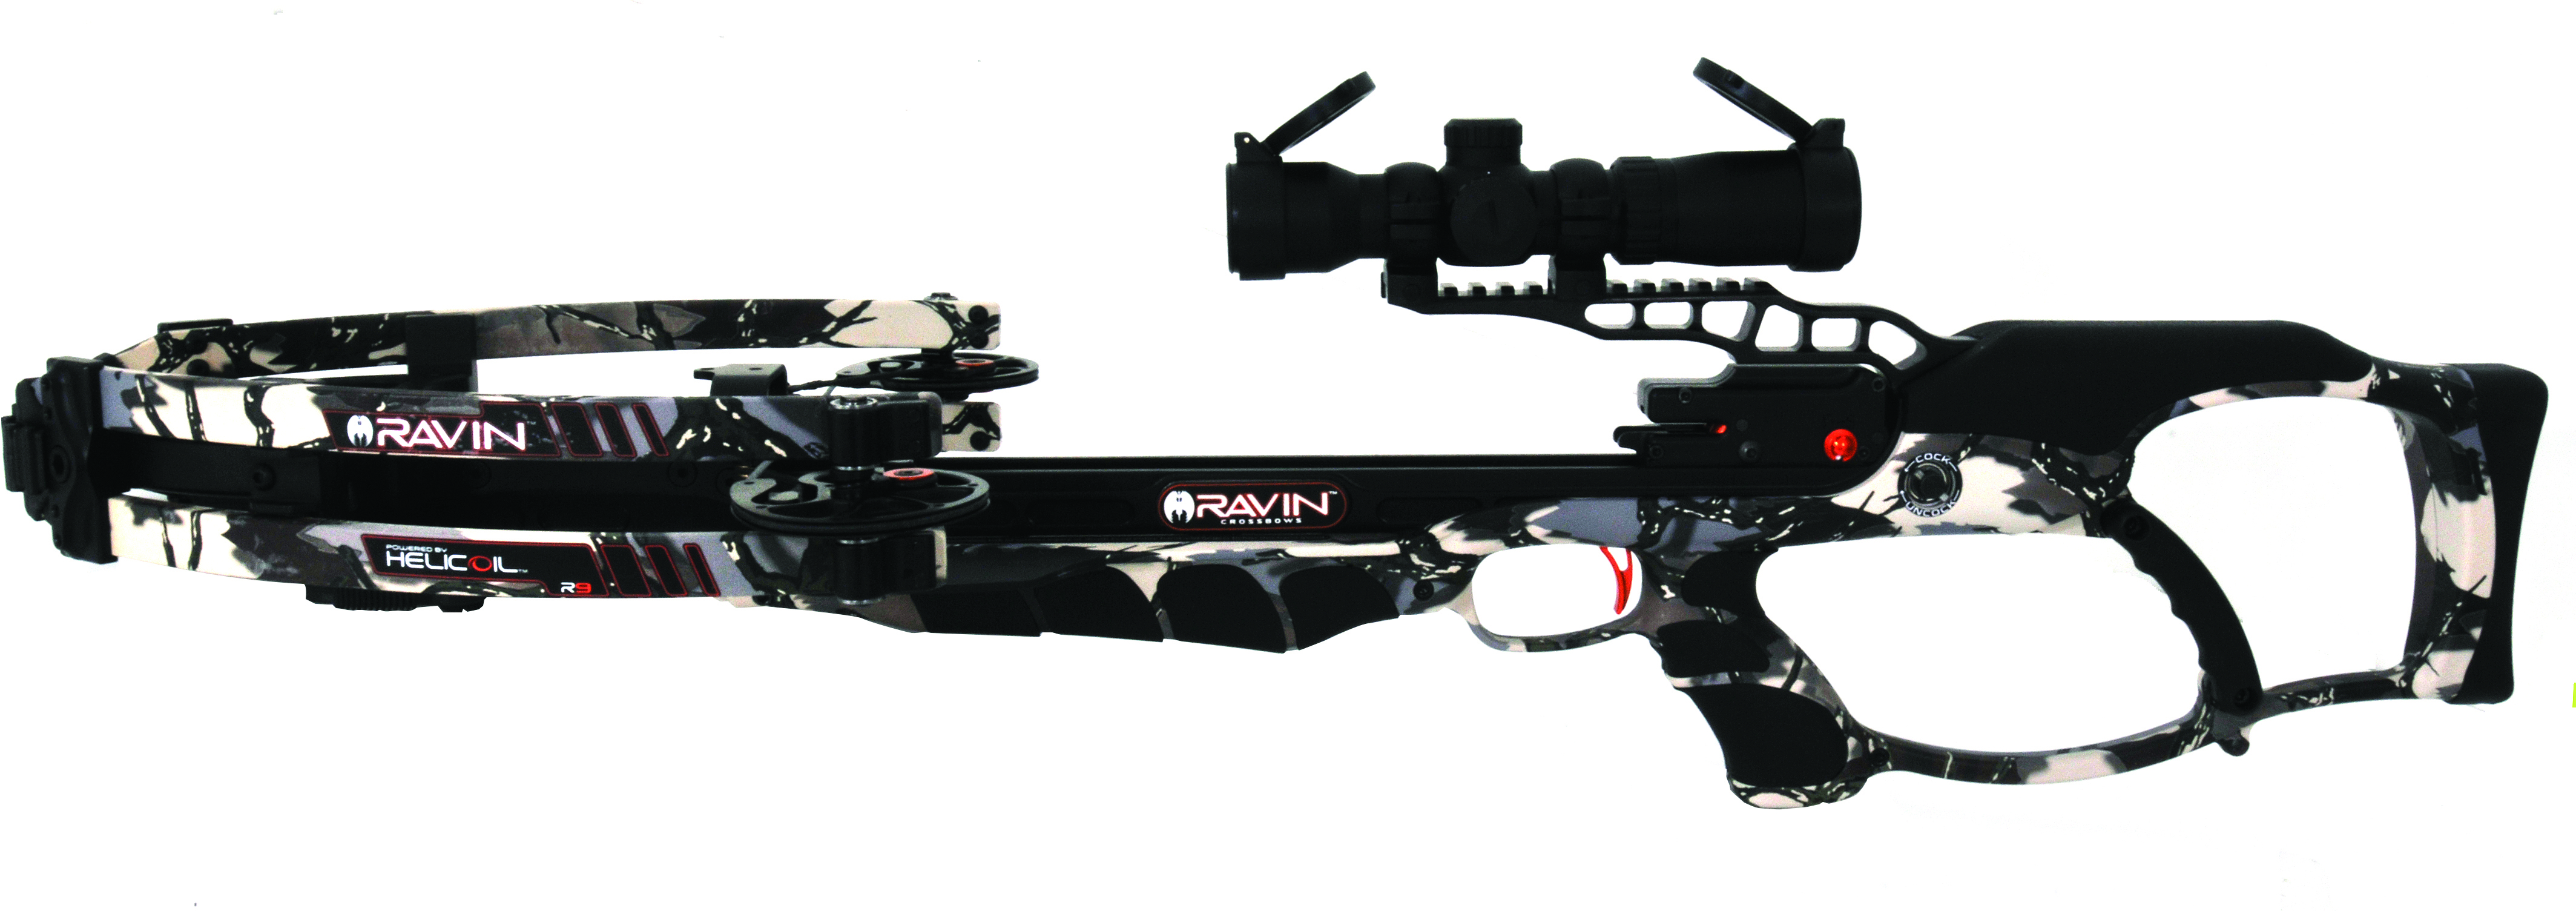 Crossbow Review: Ravin R9